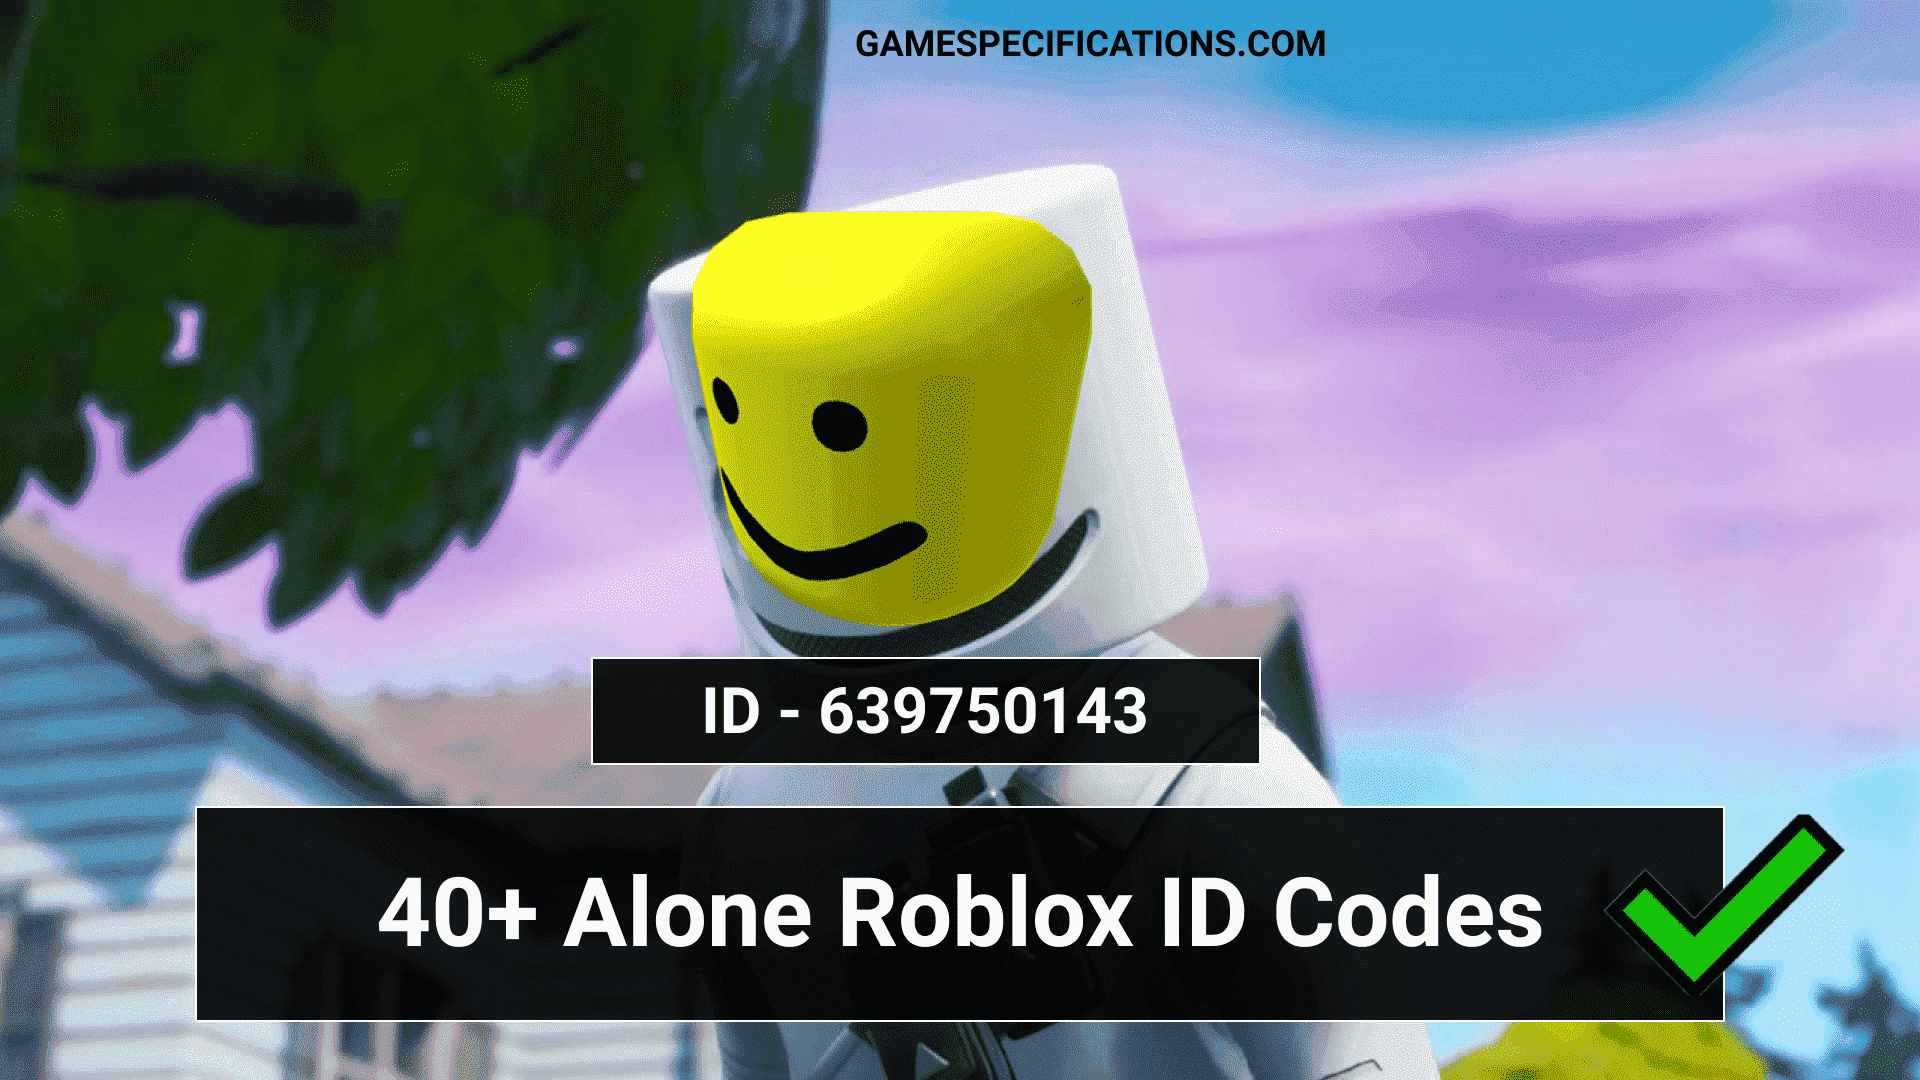 40+ Popular Alone Roblox ID Codes 2021 - Game Specifications